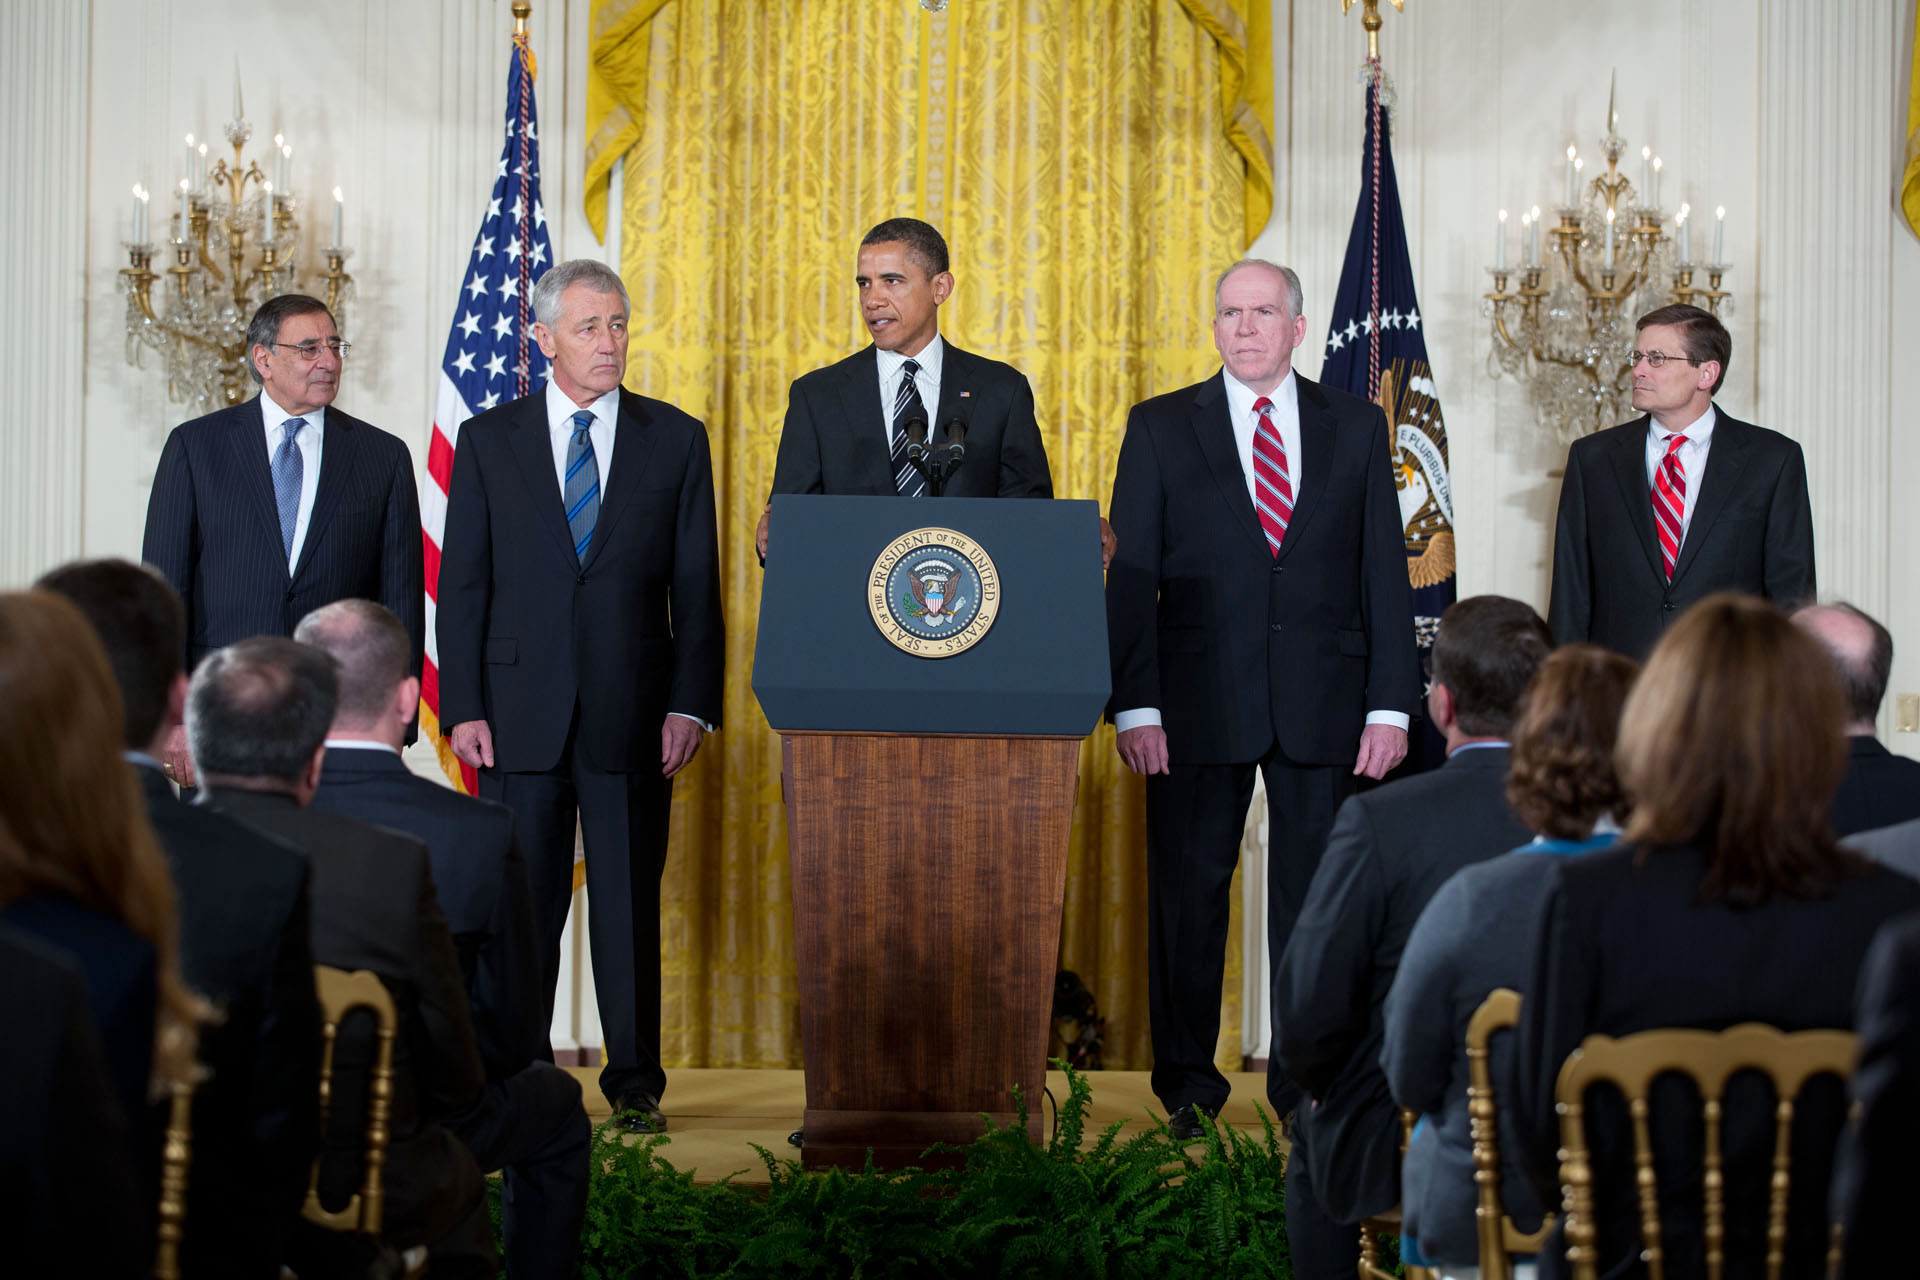 President Obama announces Chuck Hagel as his nominee for Secretary of Defense (January 7, 2013)